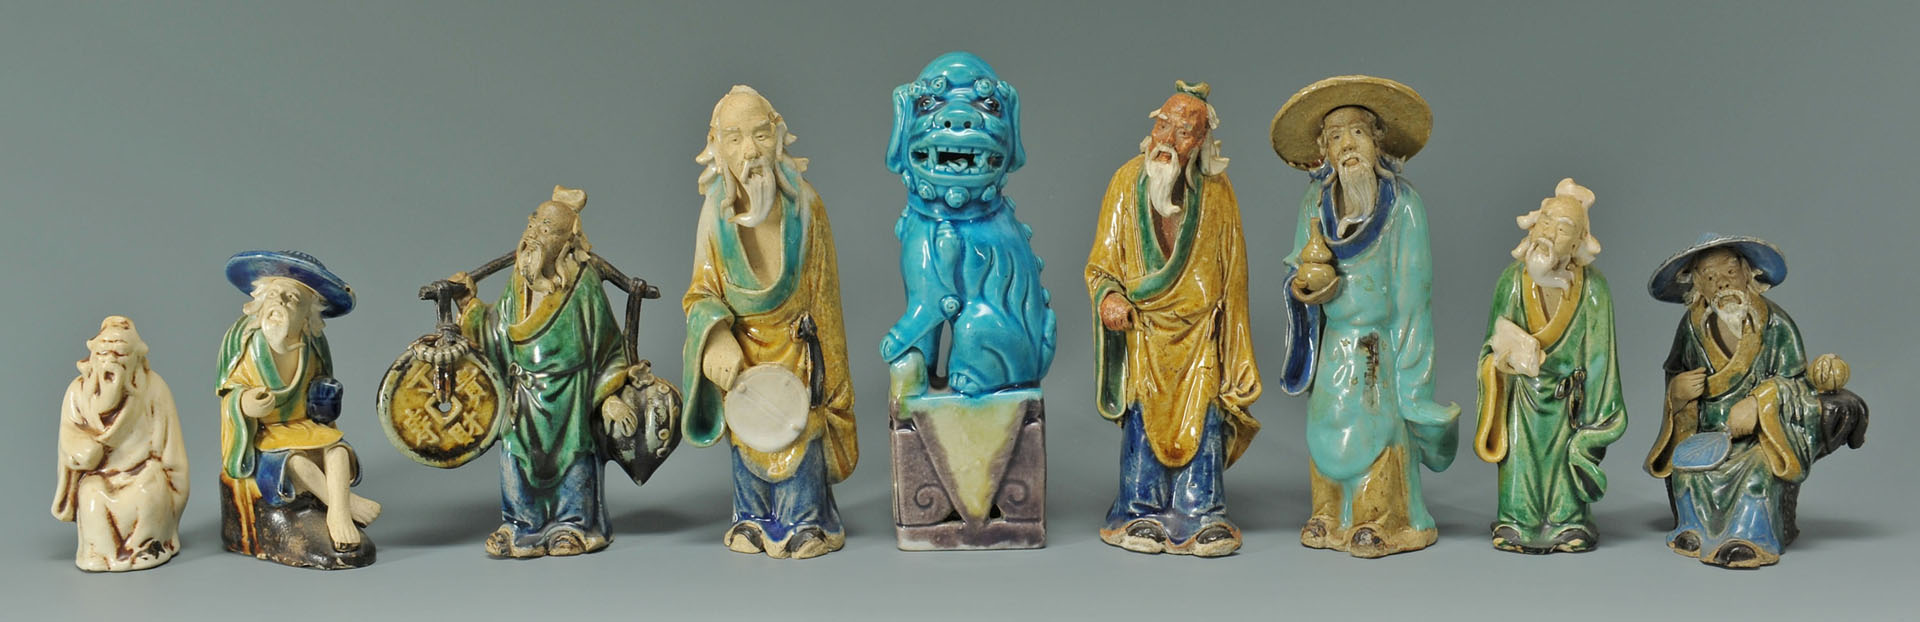 15 Chinese ceramic/porcelain items inc. mud men